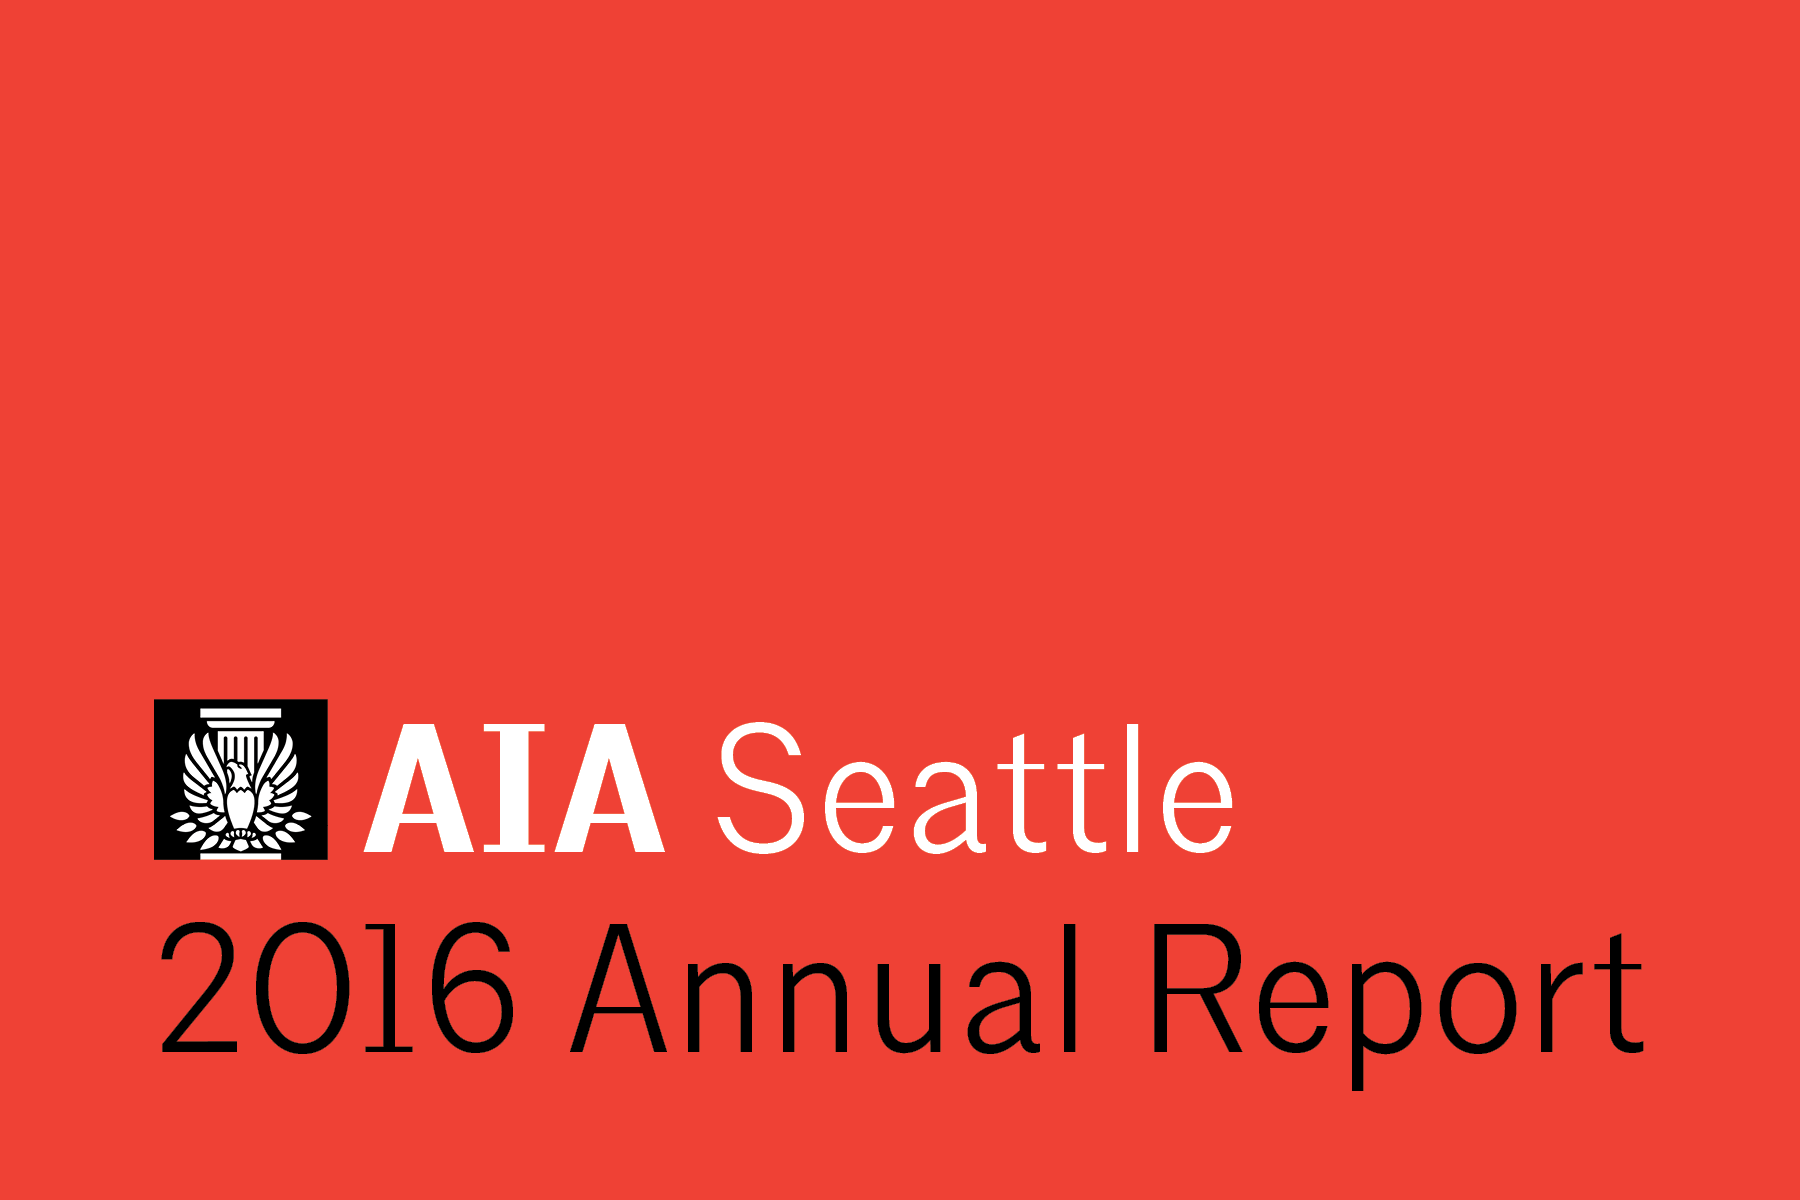 2016 was a year of transformation for AIA Seattle. With the opening of the new Center for Architecture & Design, we have entered a new era of public engagement, demonstrating the value of architectural thinking to our thriving community.